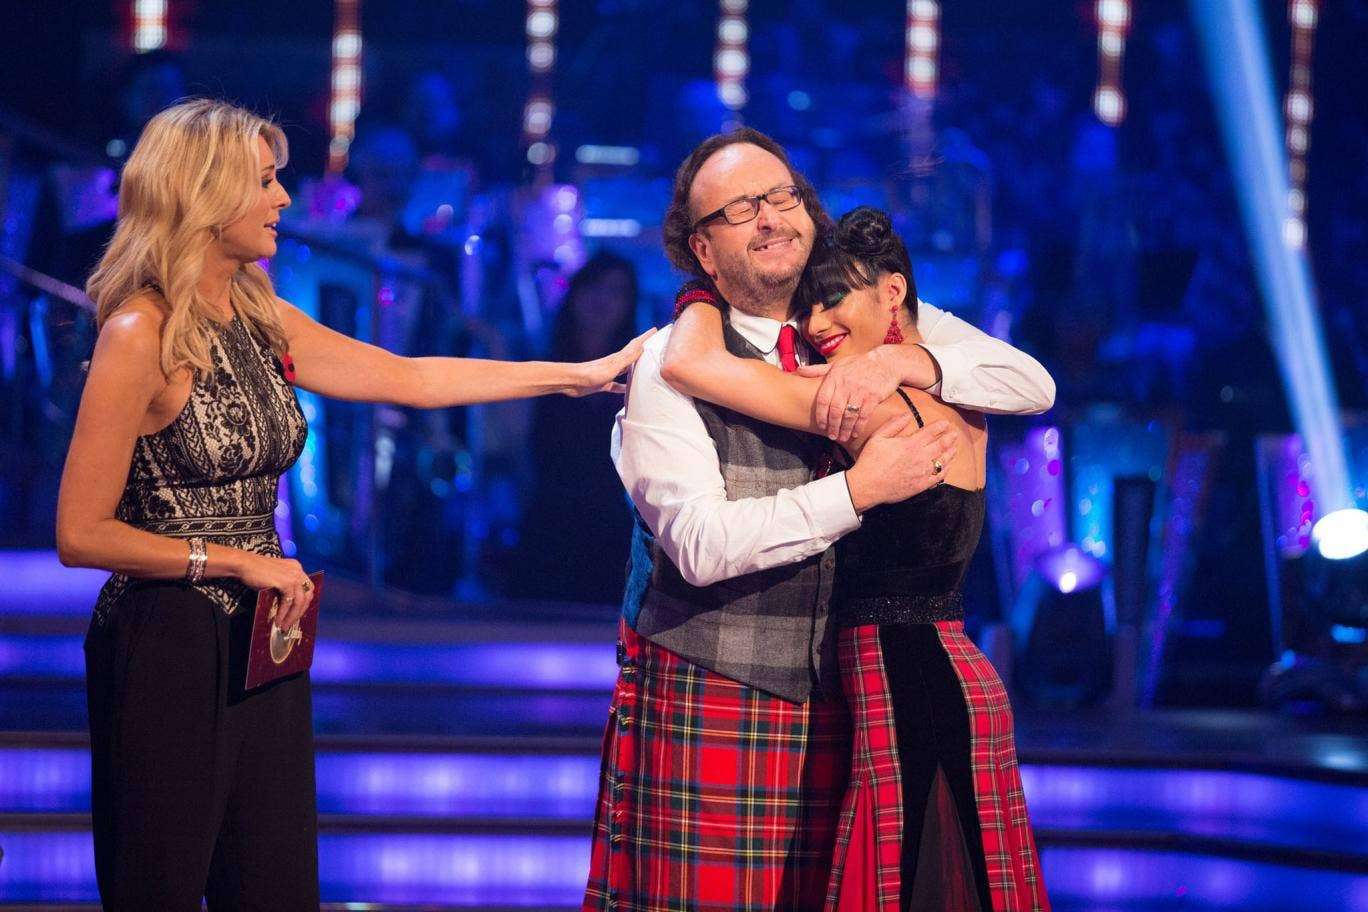 Dave Myers hugs dance partner Karen Hauer after being voted off Strictly Come Dancing 2013